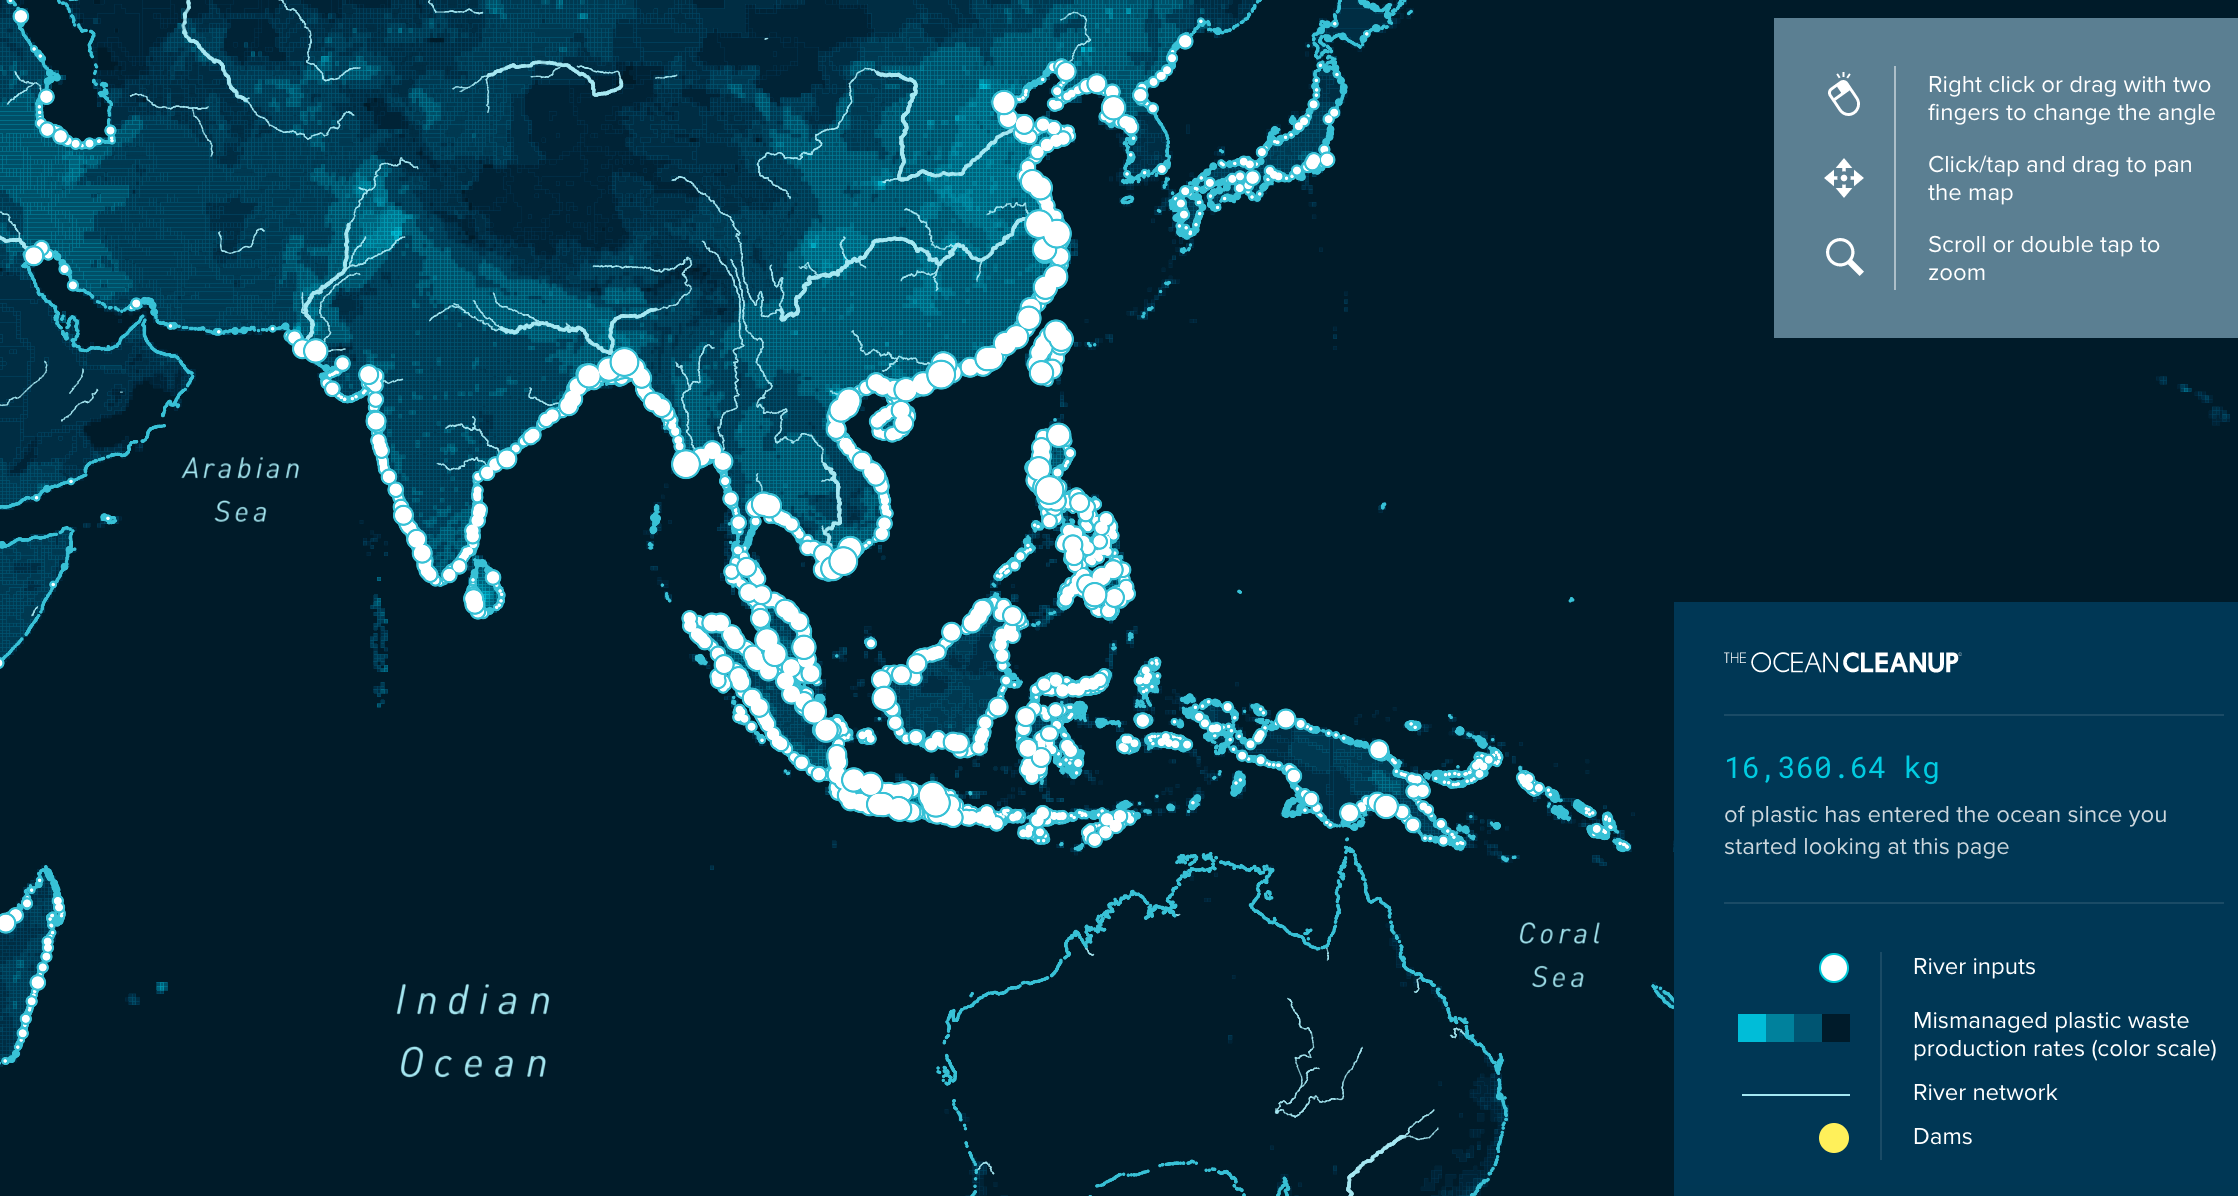 Check out the interactive map   illustrating the flo  w of plastics from rivers to the oceans.